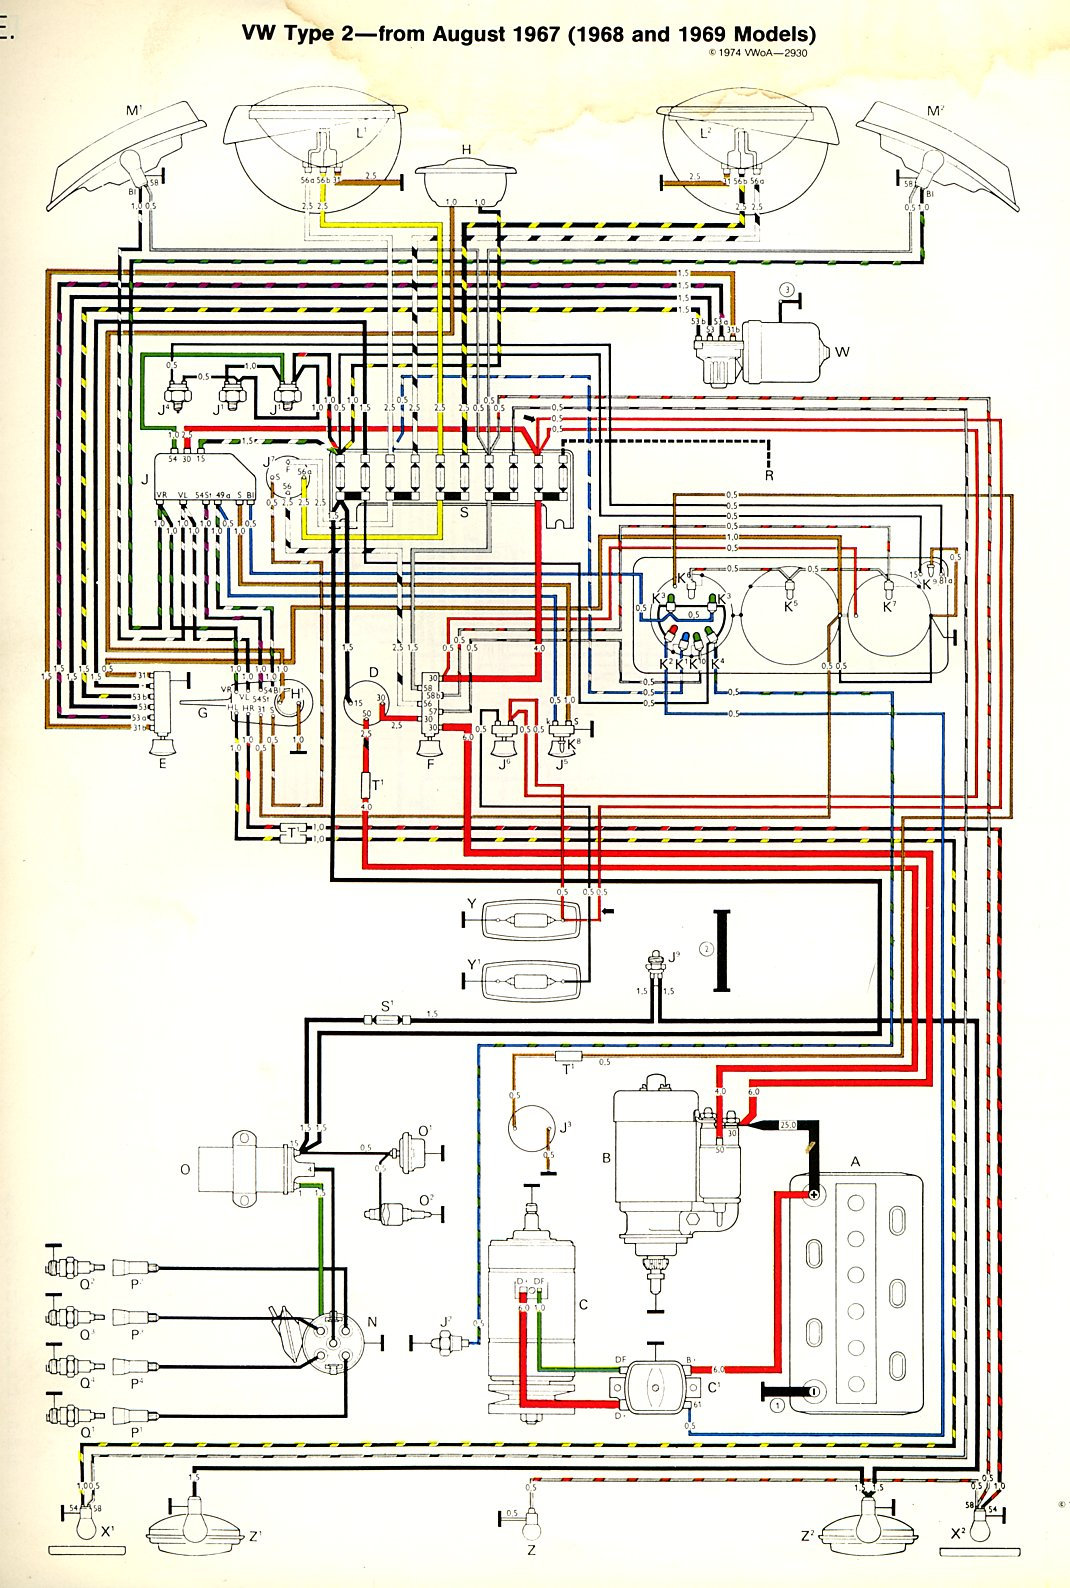 hight resolution of thesamba com type 2 wiring diagrams1970 vw bus wiring diagram 7